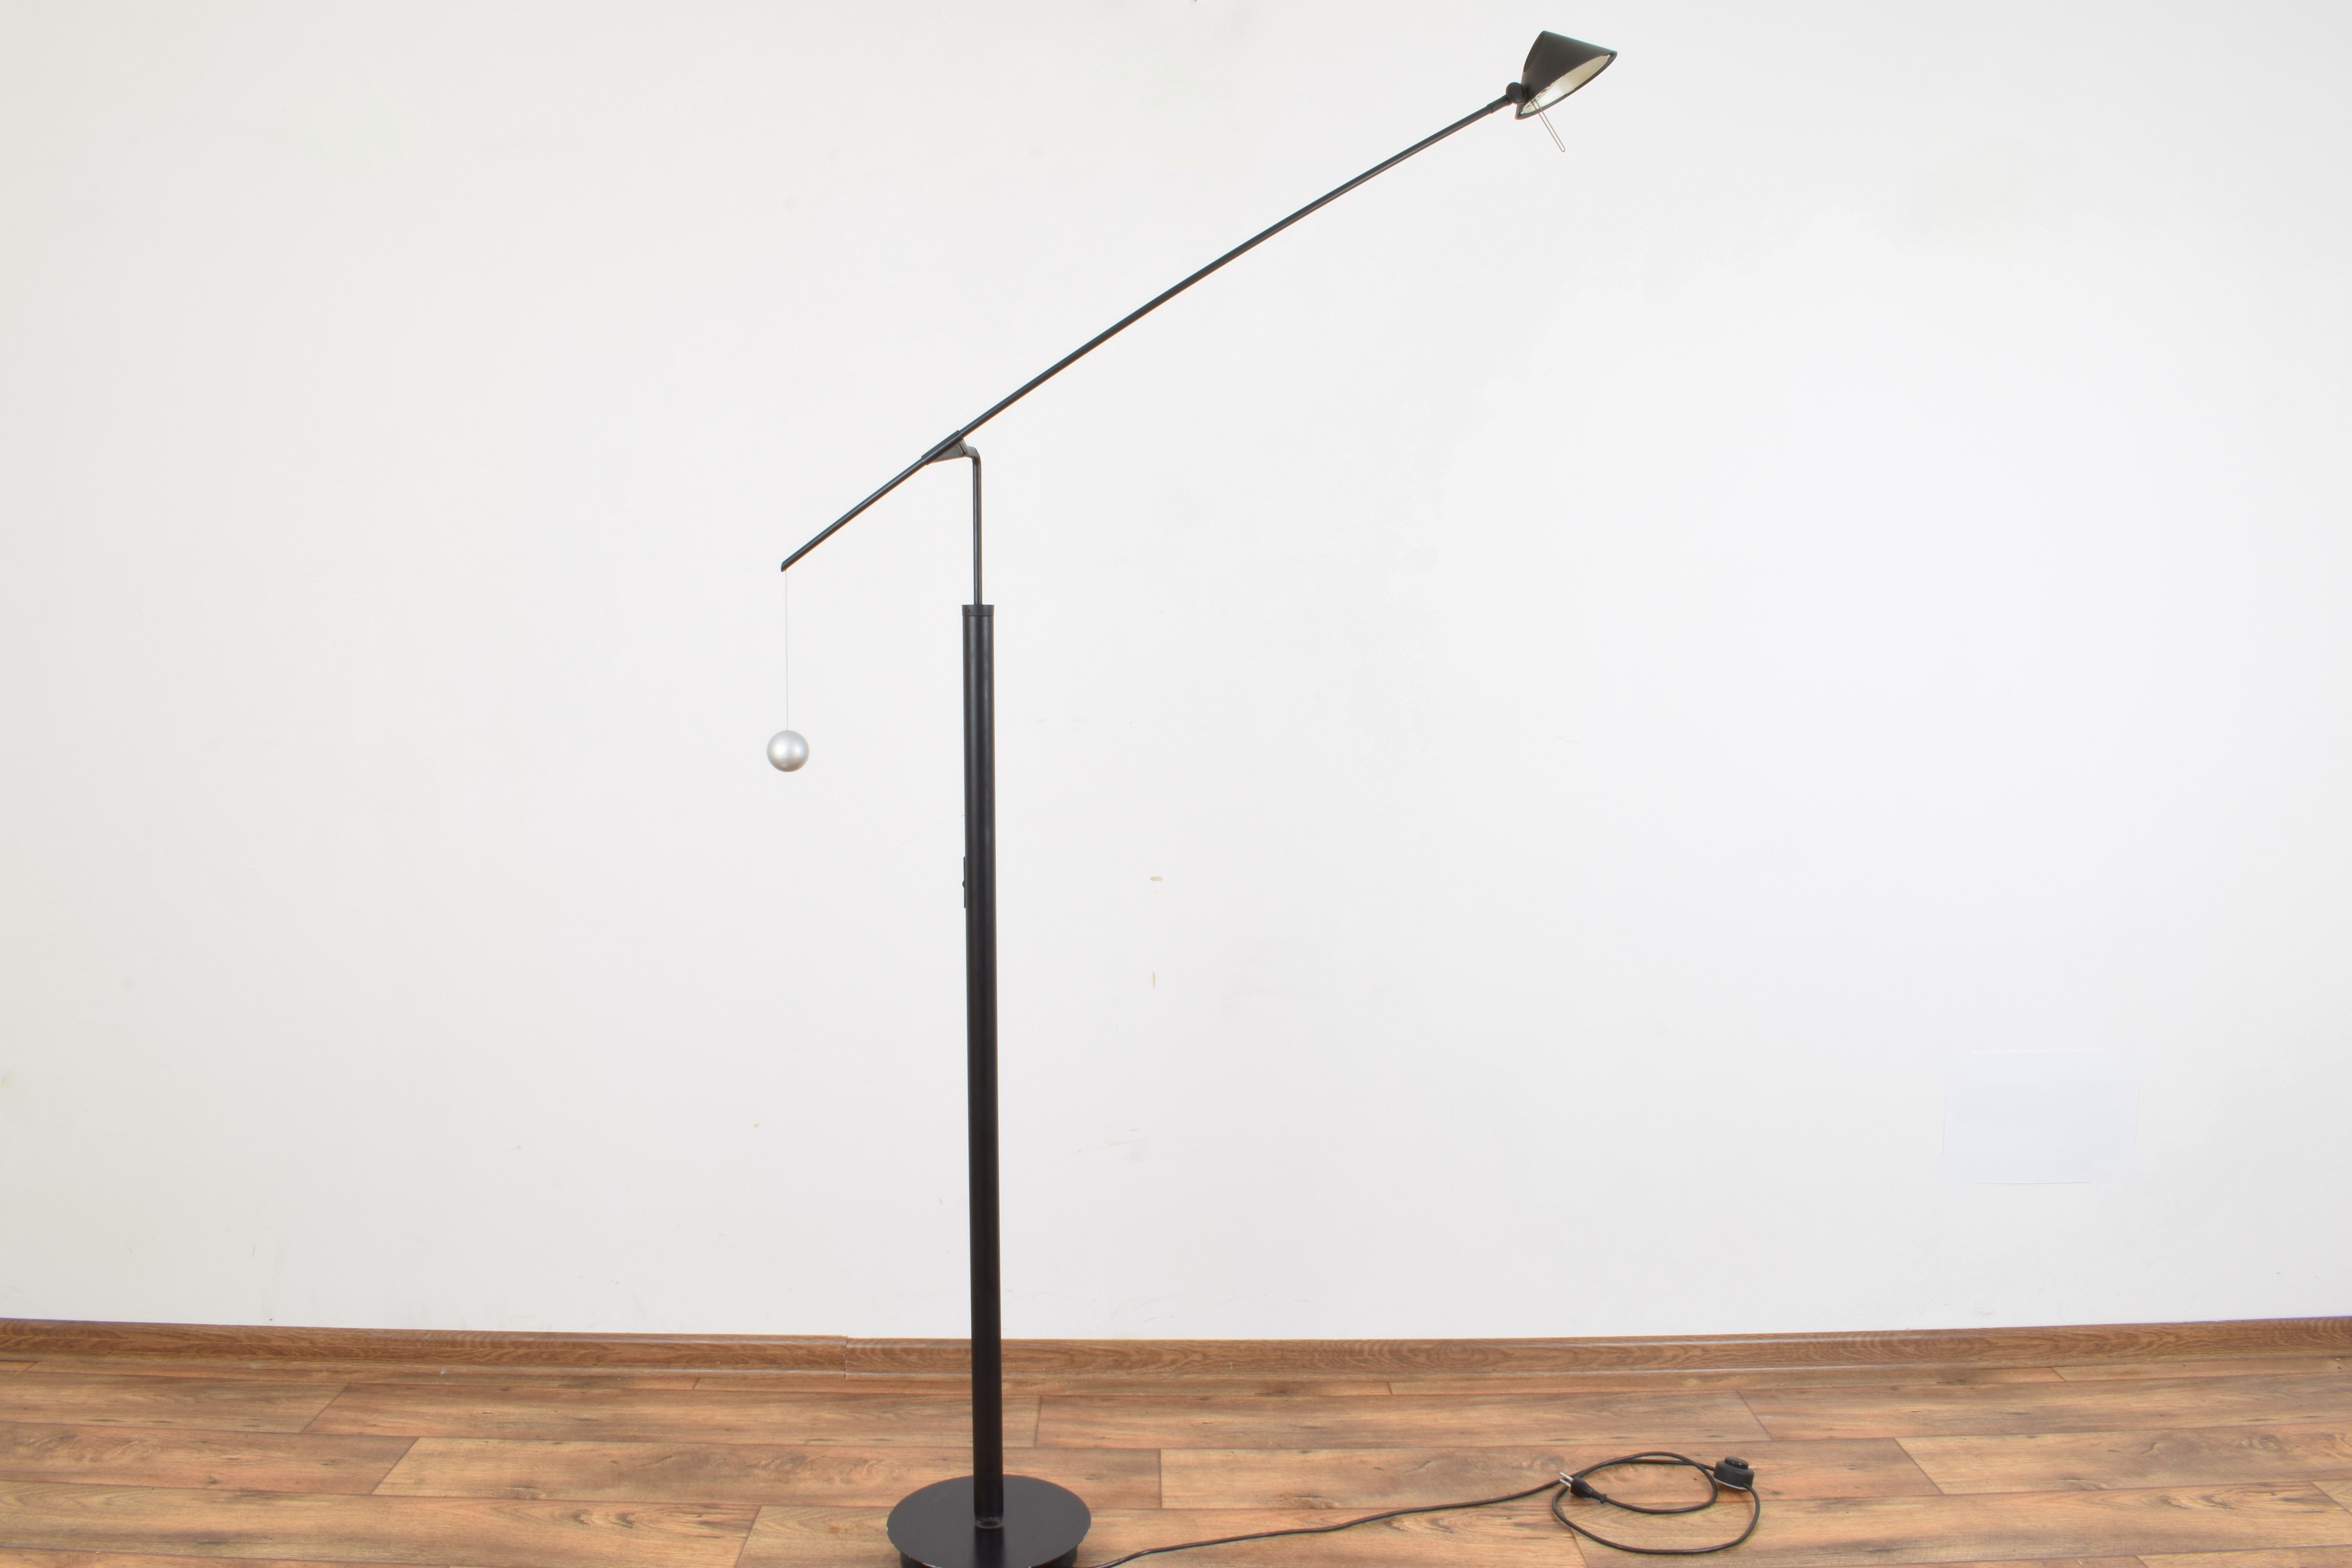 Vintage Italian Floor Lamp Model Quot Nestore Lettura Quot By Carlo Forcolini For Artemide 1980